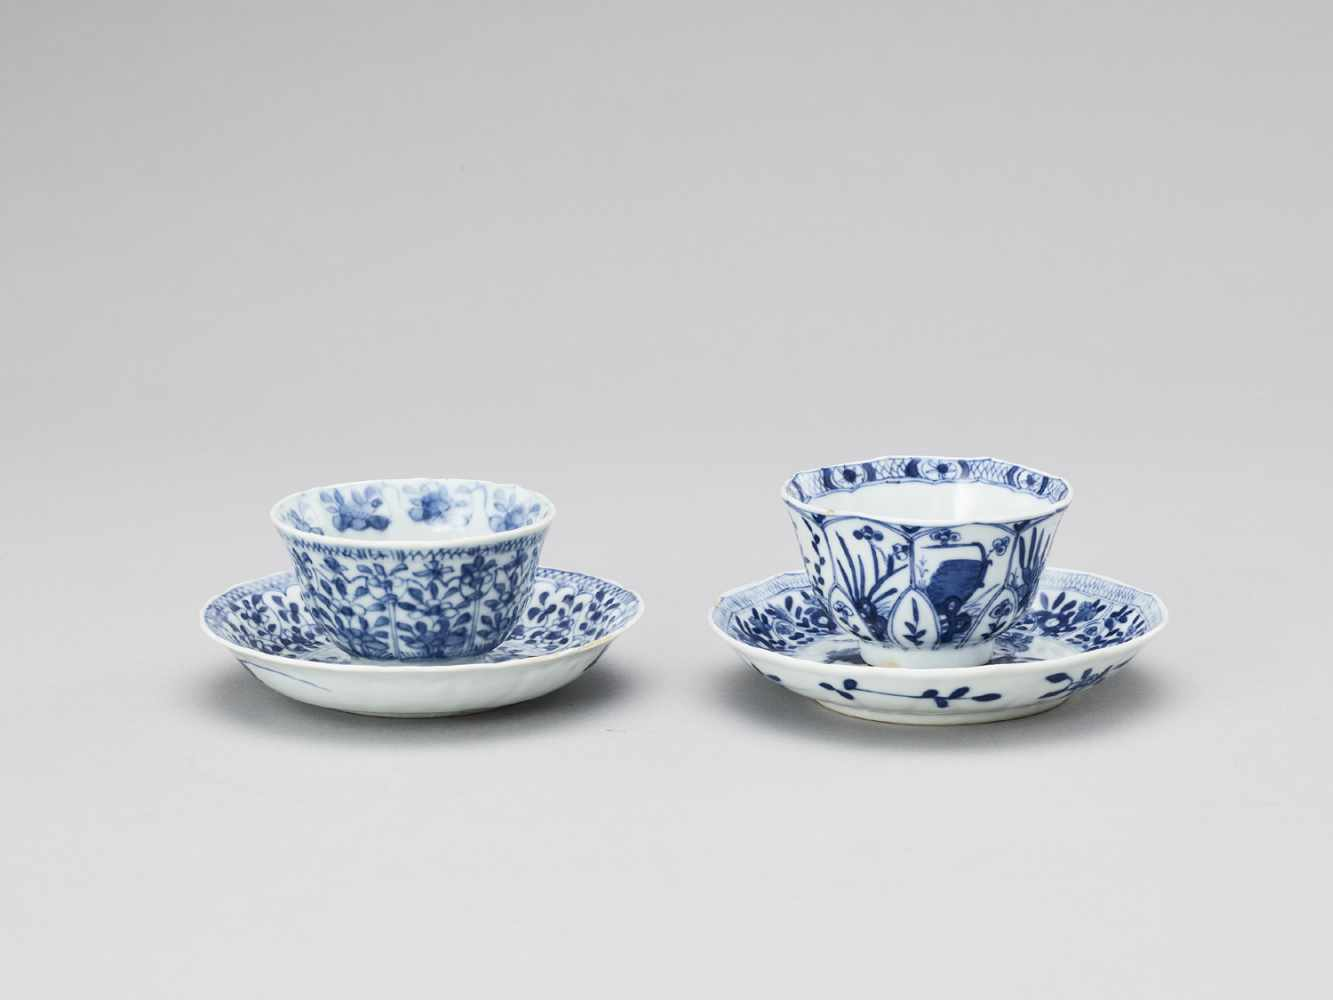 A PAIR OF BLUE AND WHITE PORCELAIN CUPS WITH MATCHING PLATES, KANGXI - Bild 4 aus 9